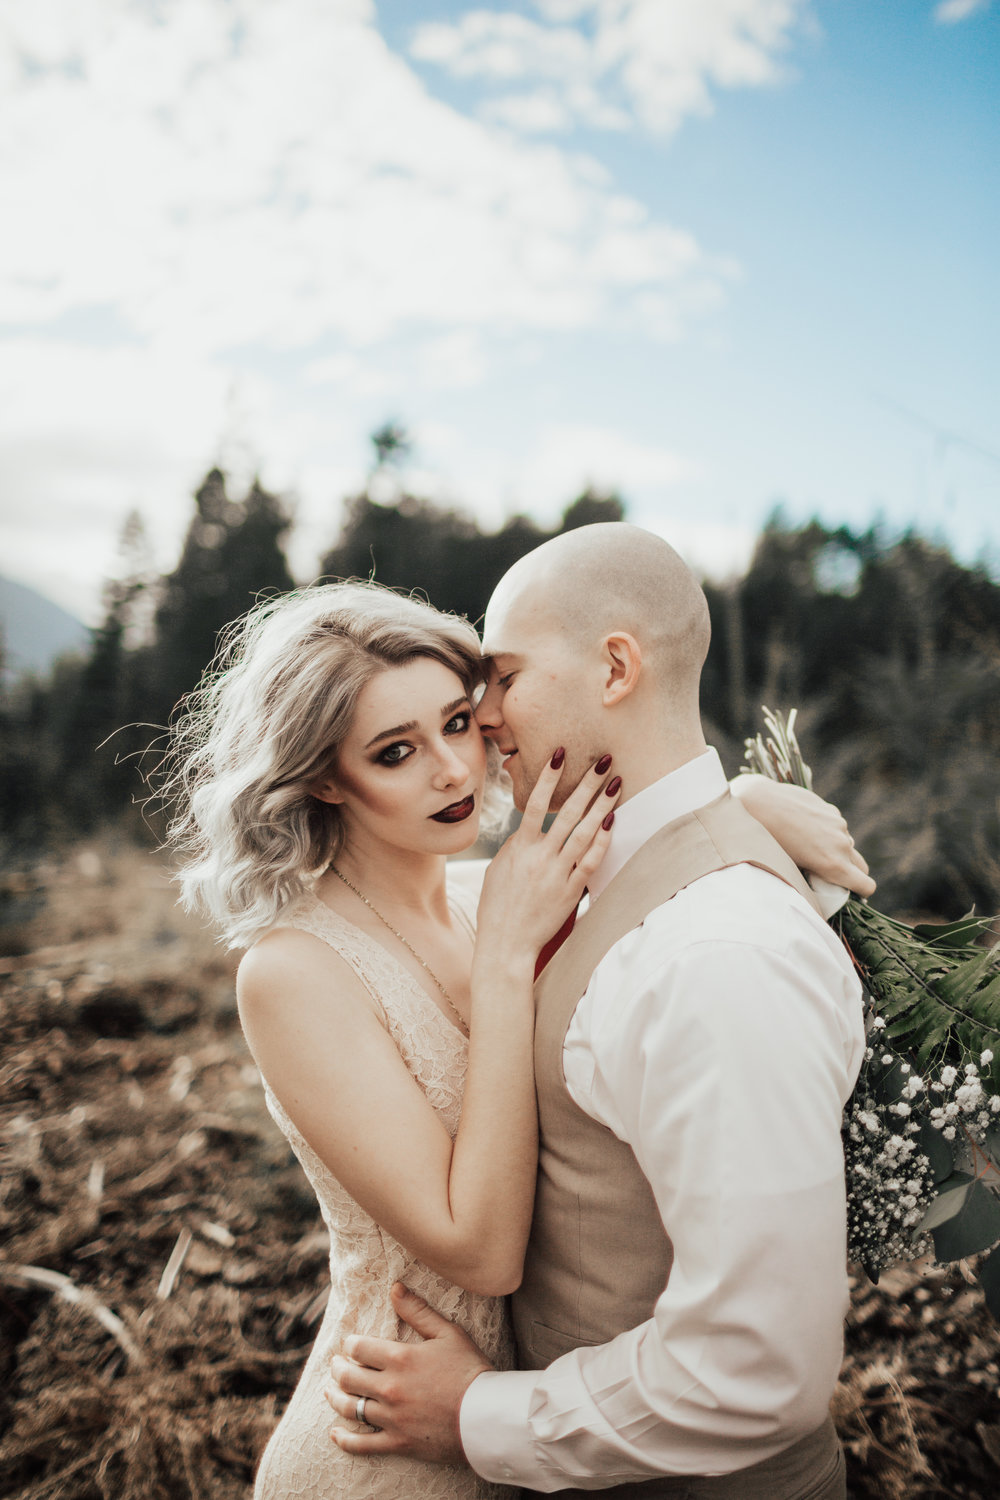 Port Angeles-PNW-Sequim-Portrait-wedding-elopement-photographer-kayladawnphoto-kayla dawn photography-olympic peninsula-portraiture8.jpg